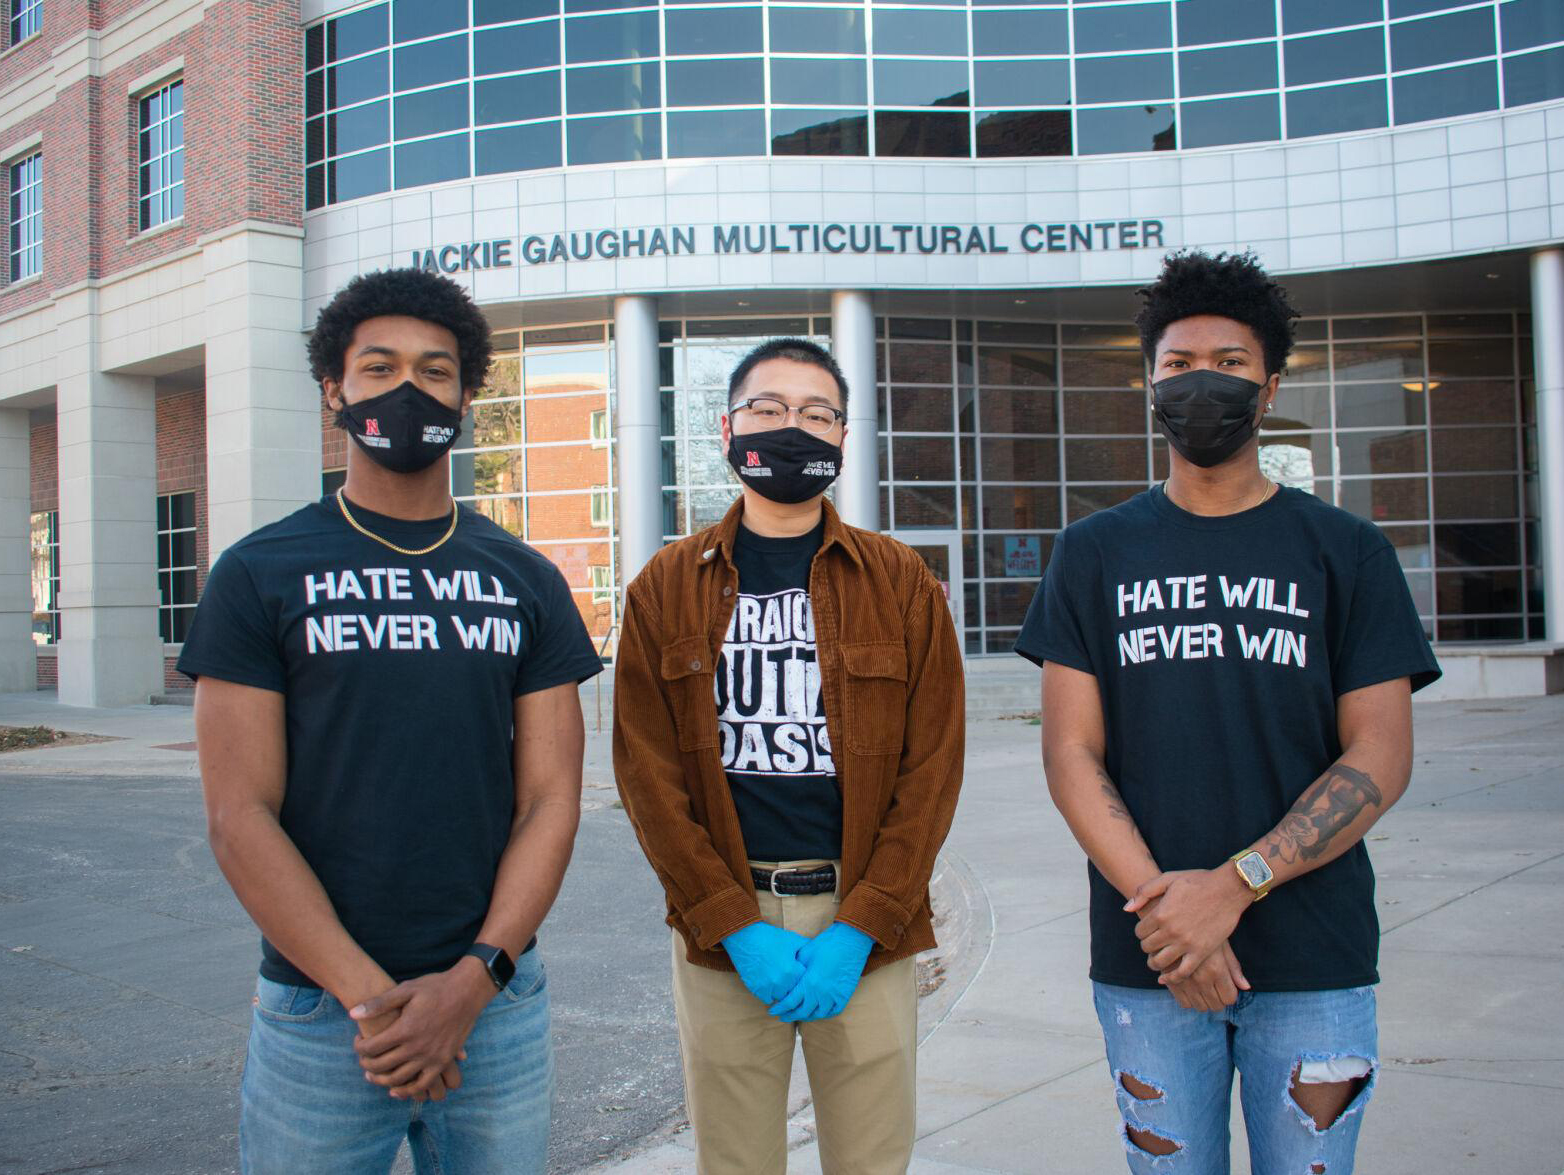 Michael Sanders, Tamayo Zhou and Elijah Merritt (left to right) pose for a portrait outside of the Jackie Gaughan Multicultural Center on March 7, 2020 in Lincoln, Nebraska. (photo by Marissa Kraus | Daily Nebraskan)